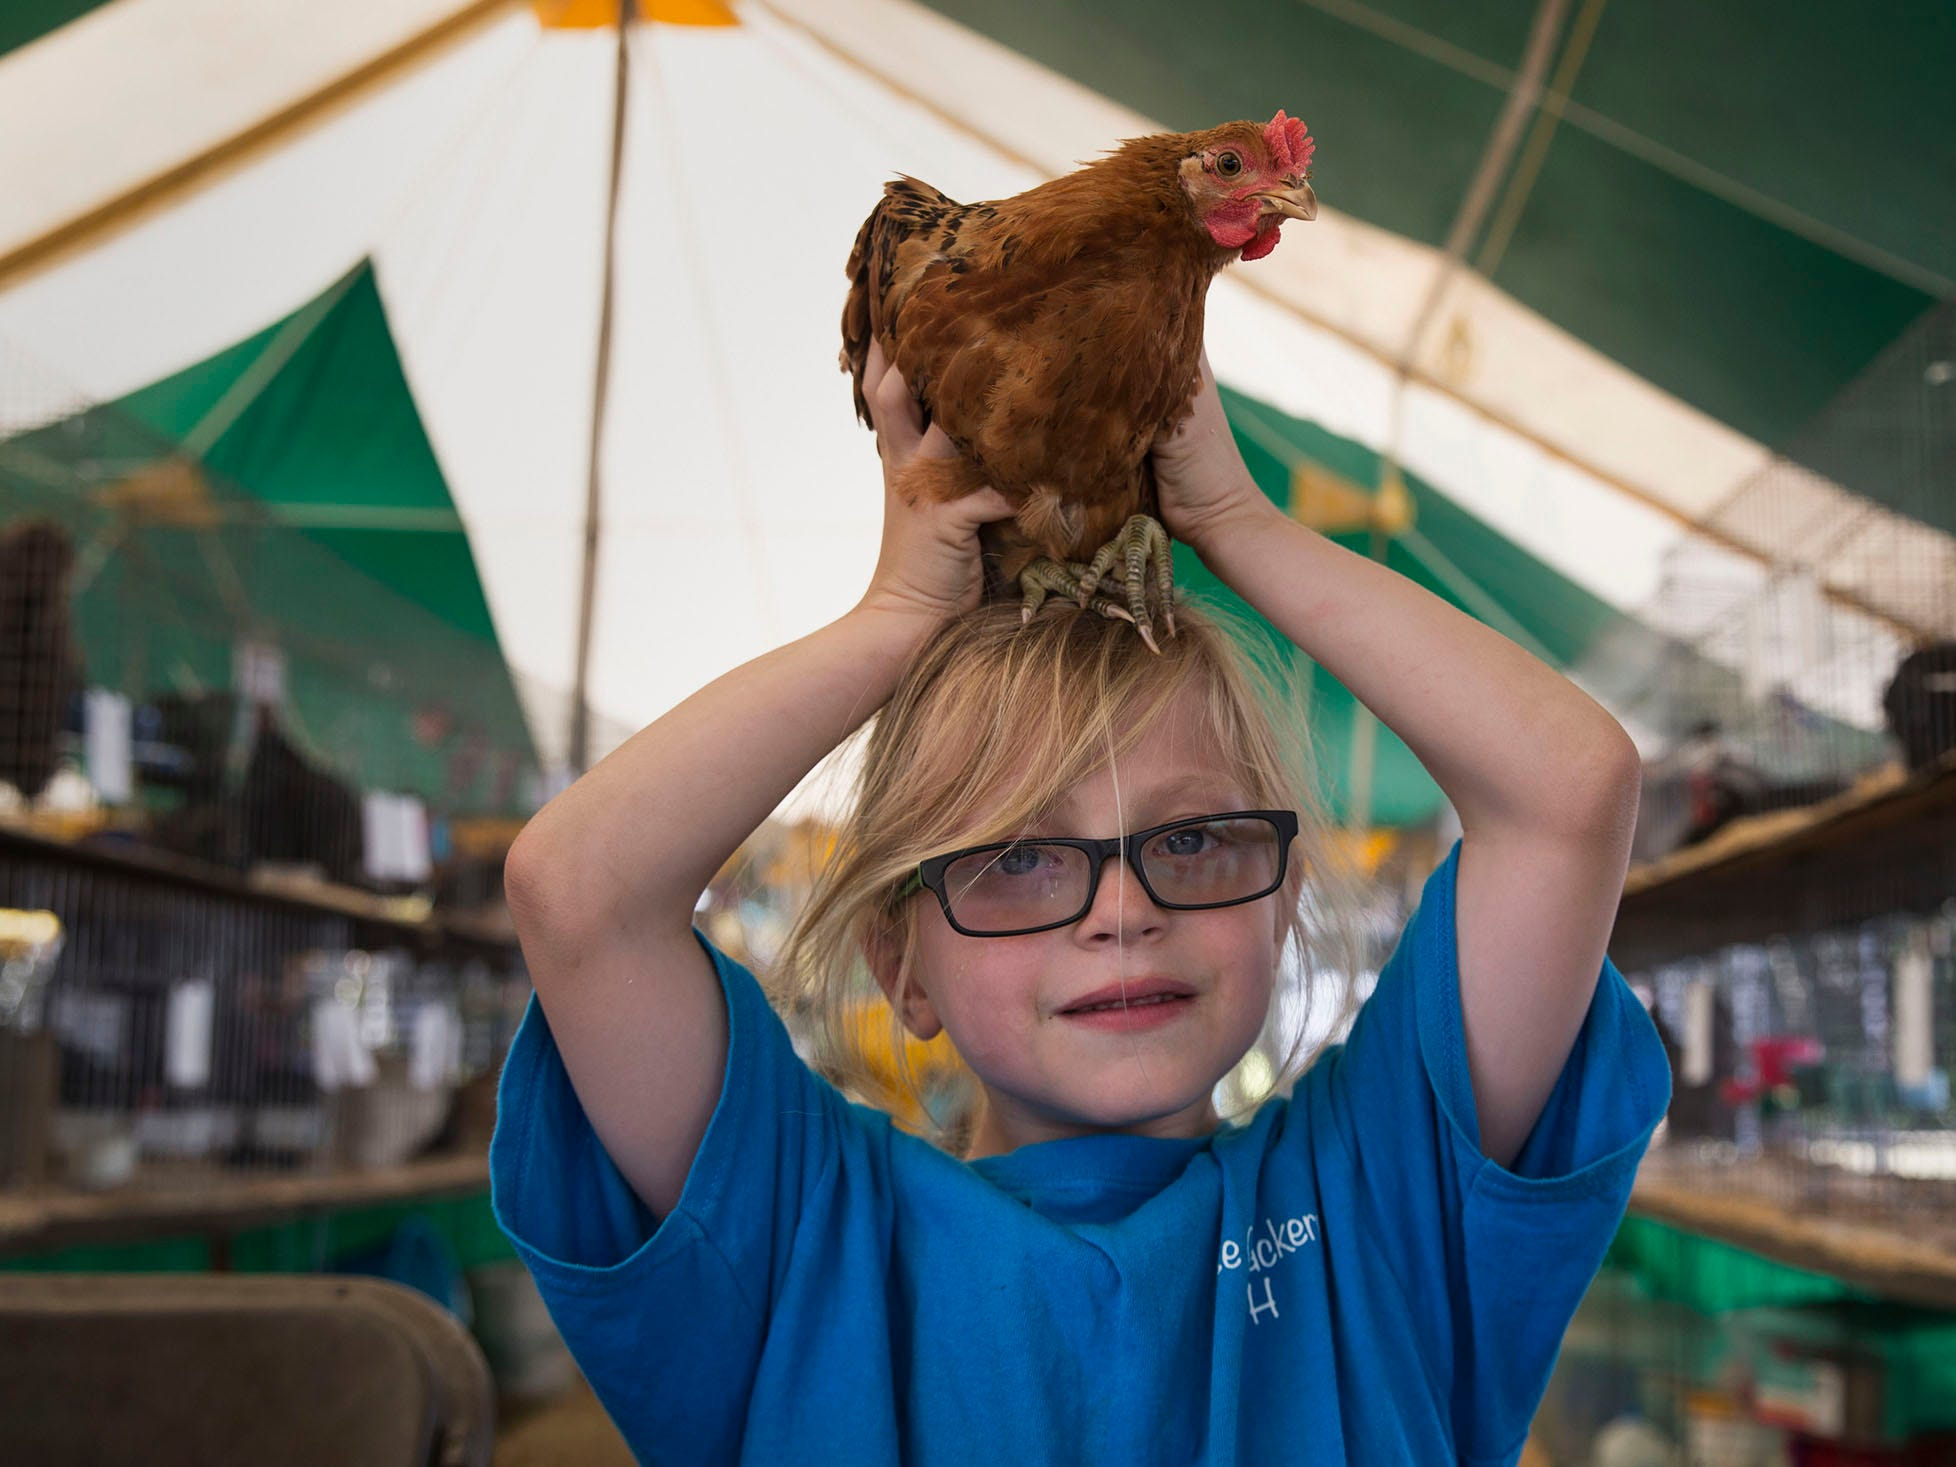 Joey Wilczek, 7, of Forked River, sits with Vito, a rooster, on his head. The Ocean County Fair continues through the weekend on the grounds of Robert J. Miller Air Park. 